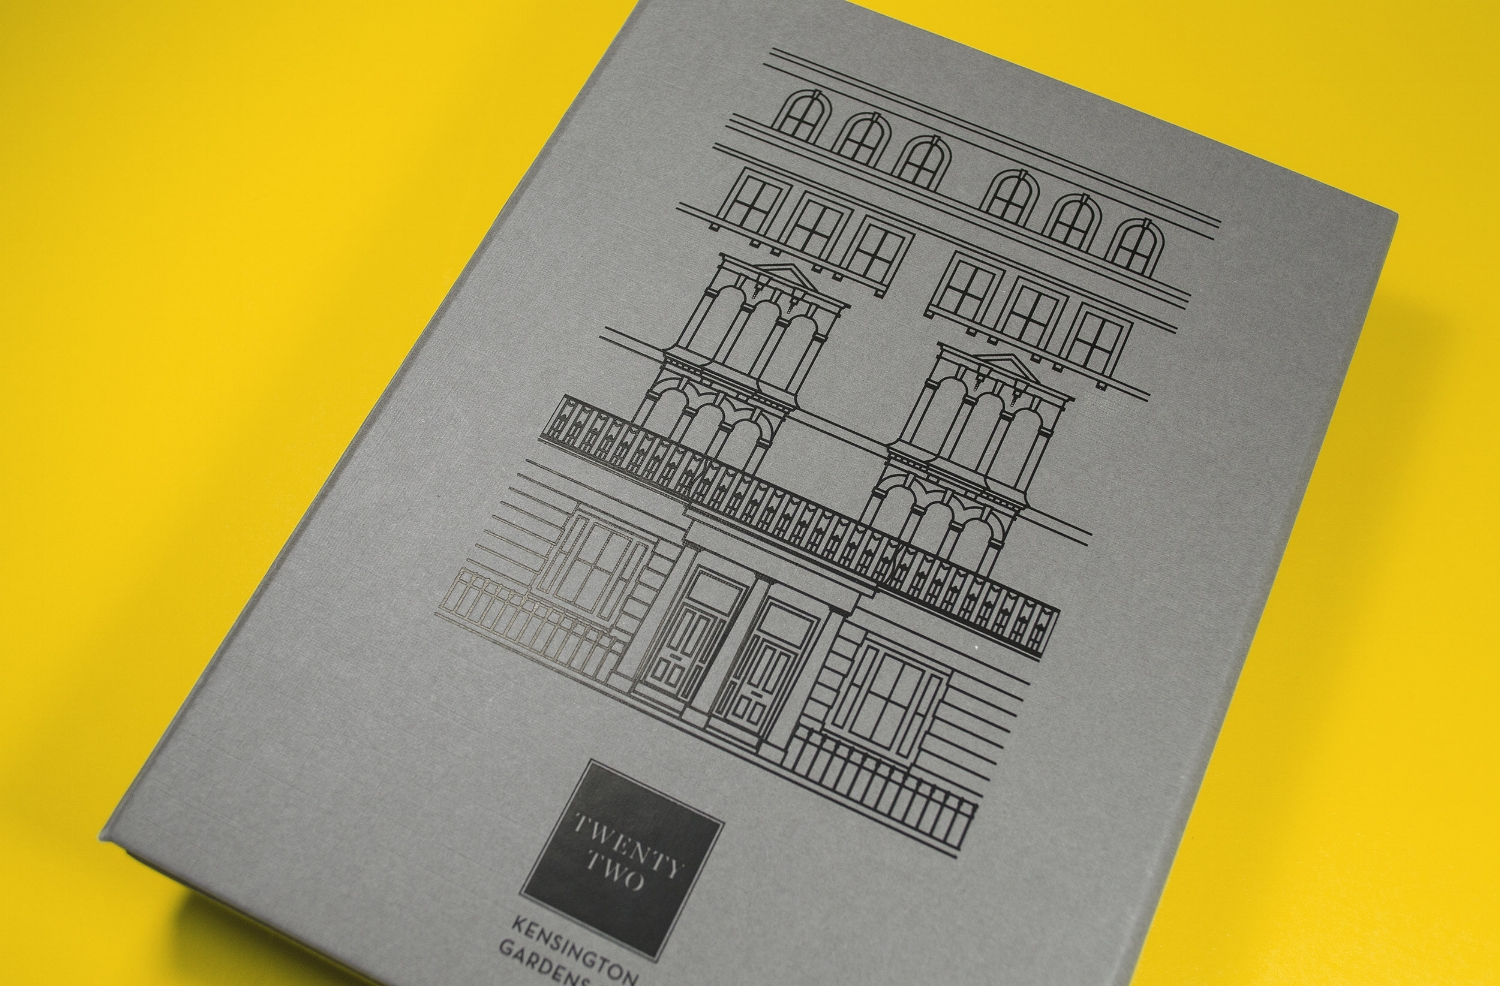 onebigcompany-design-london-art-direction-property-marketing-brochure-kensington-gardens-1.jpg